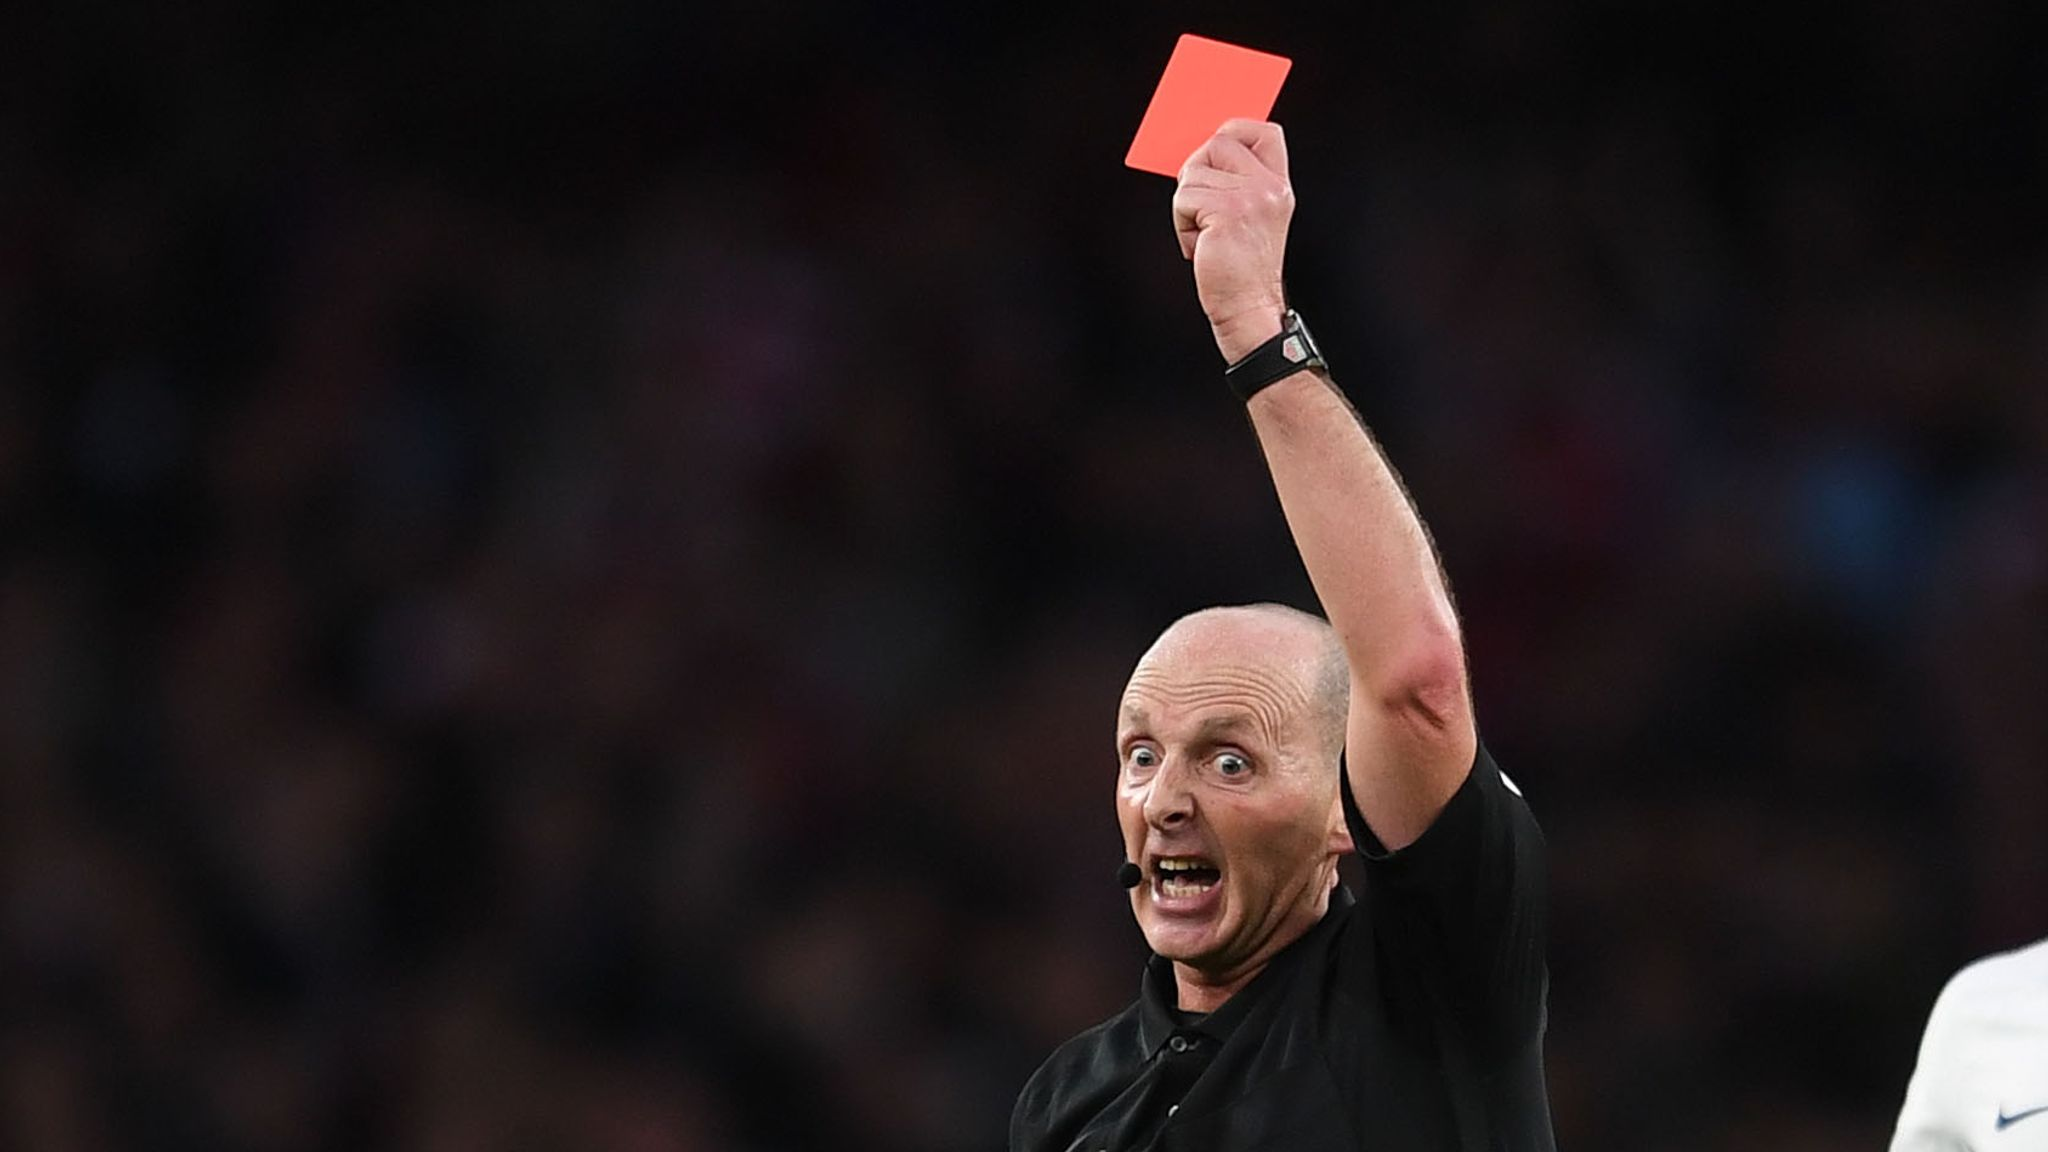 Coronavirus Footballers to be shown red card if they deliberately cough at  other players  World News  Sky News